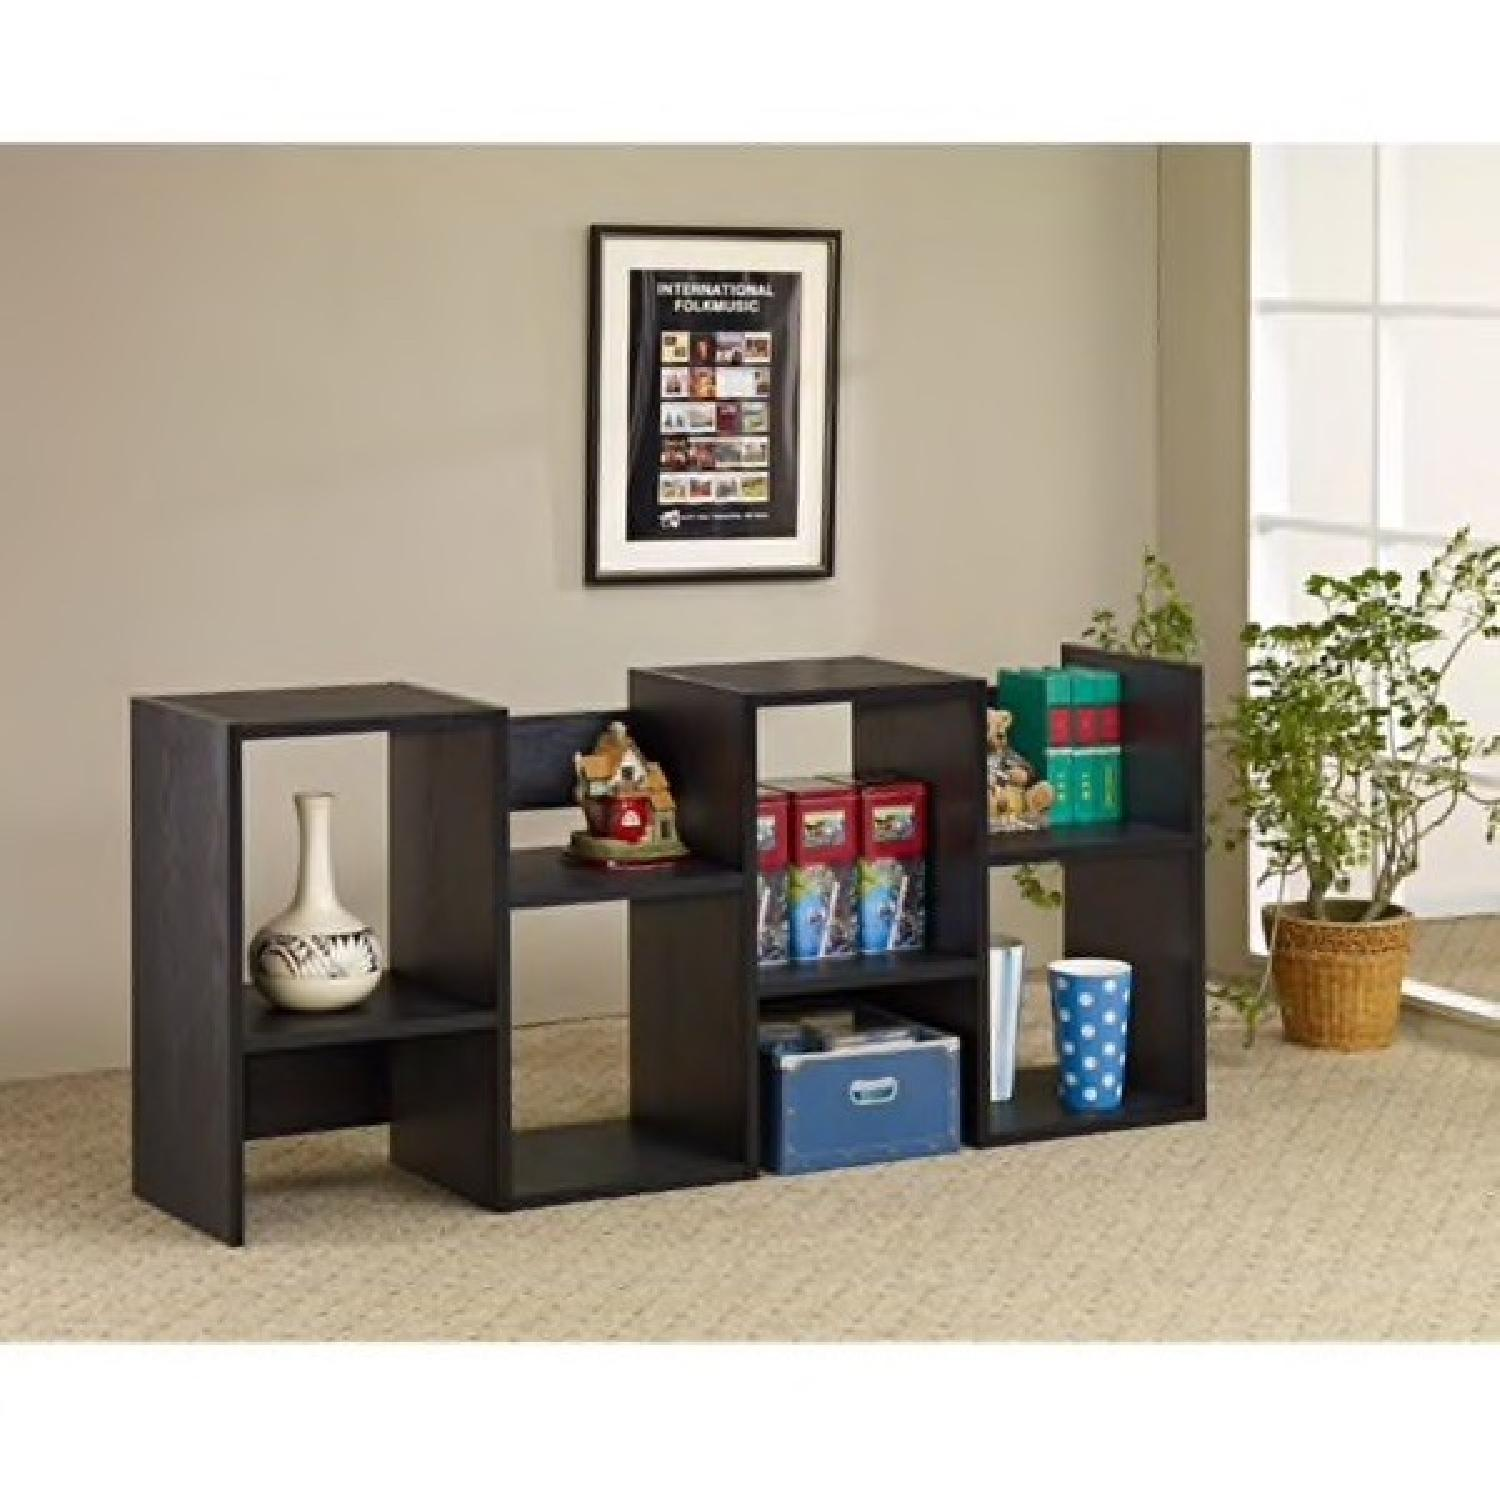 Furniture of America Display Cabinet/Bookcase - image-4